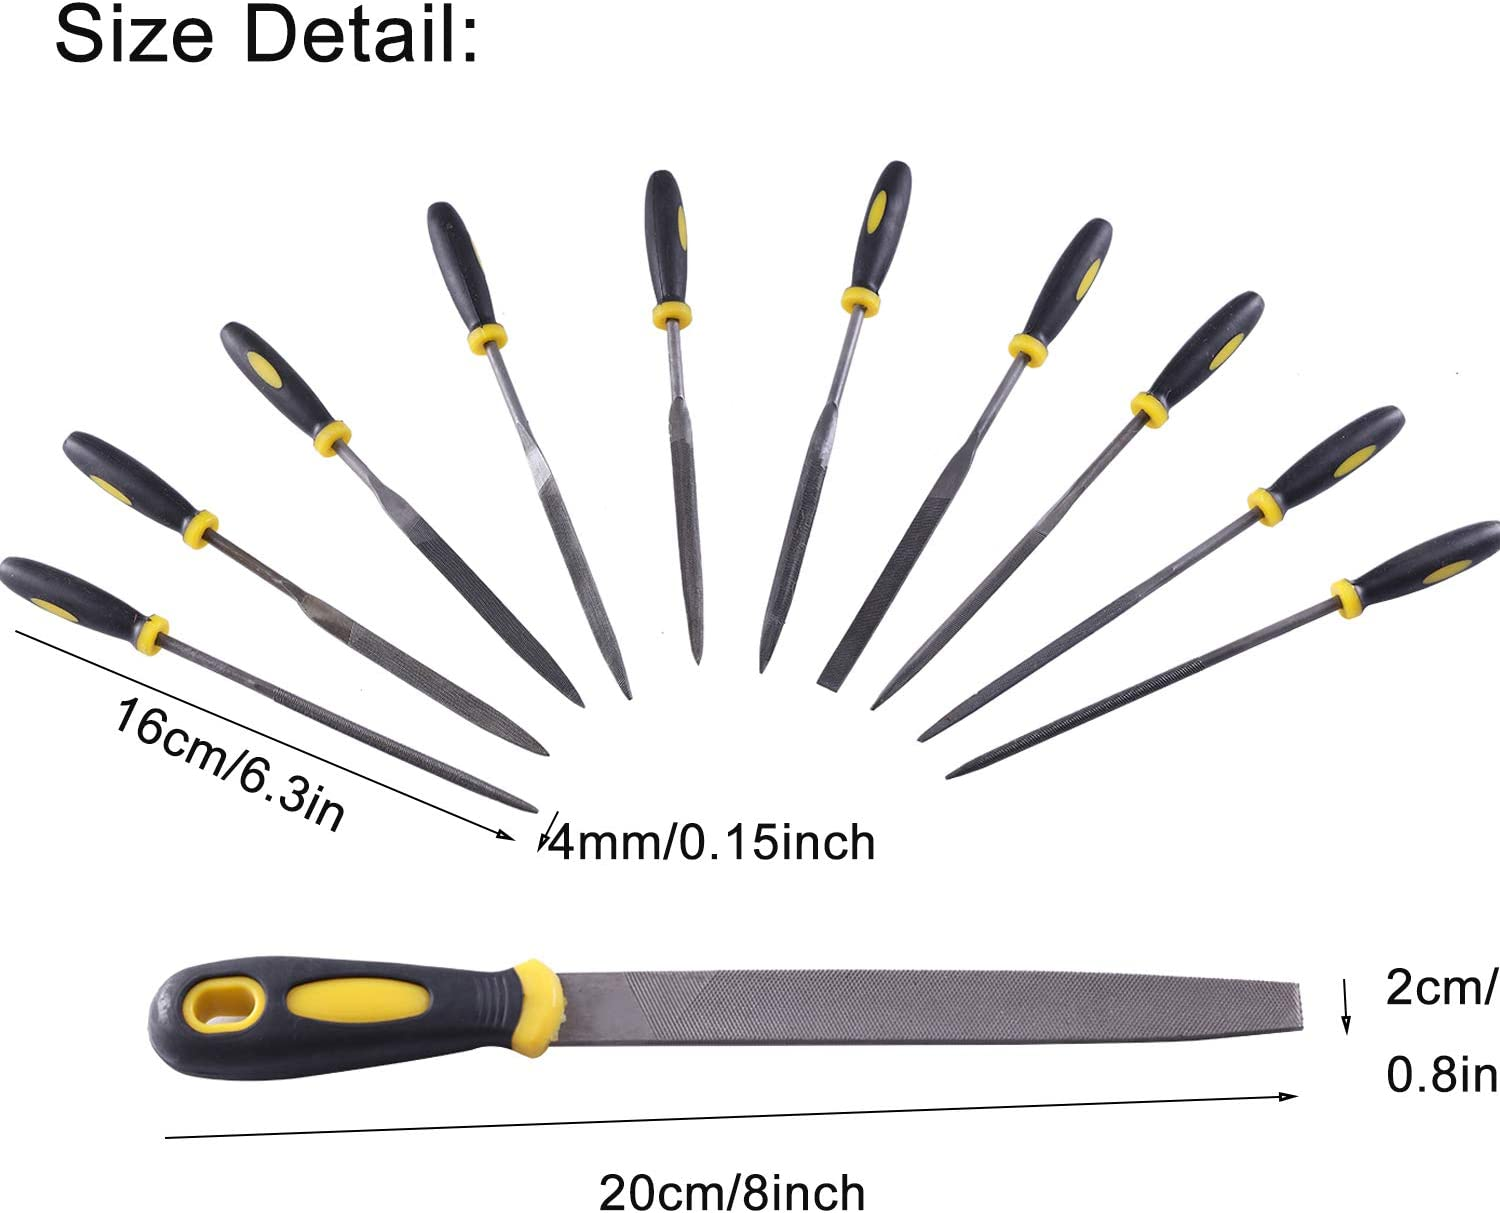 Golden^Li Alloy Steel Hand Metal File /& Rasp Tools for Wood//Soft Metal//Plastic and Hobby Projects 11pcs Needle File Set